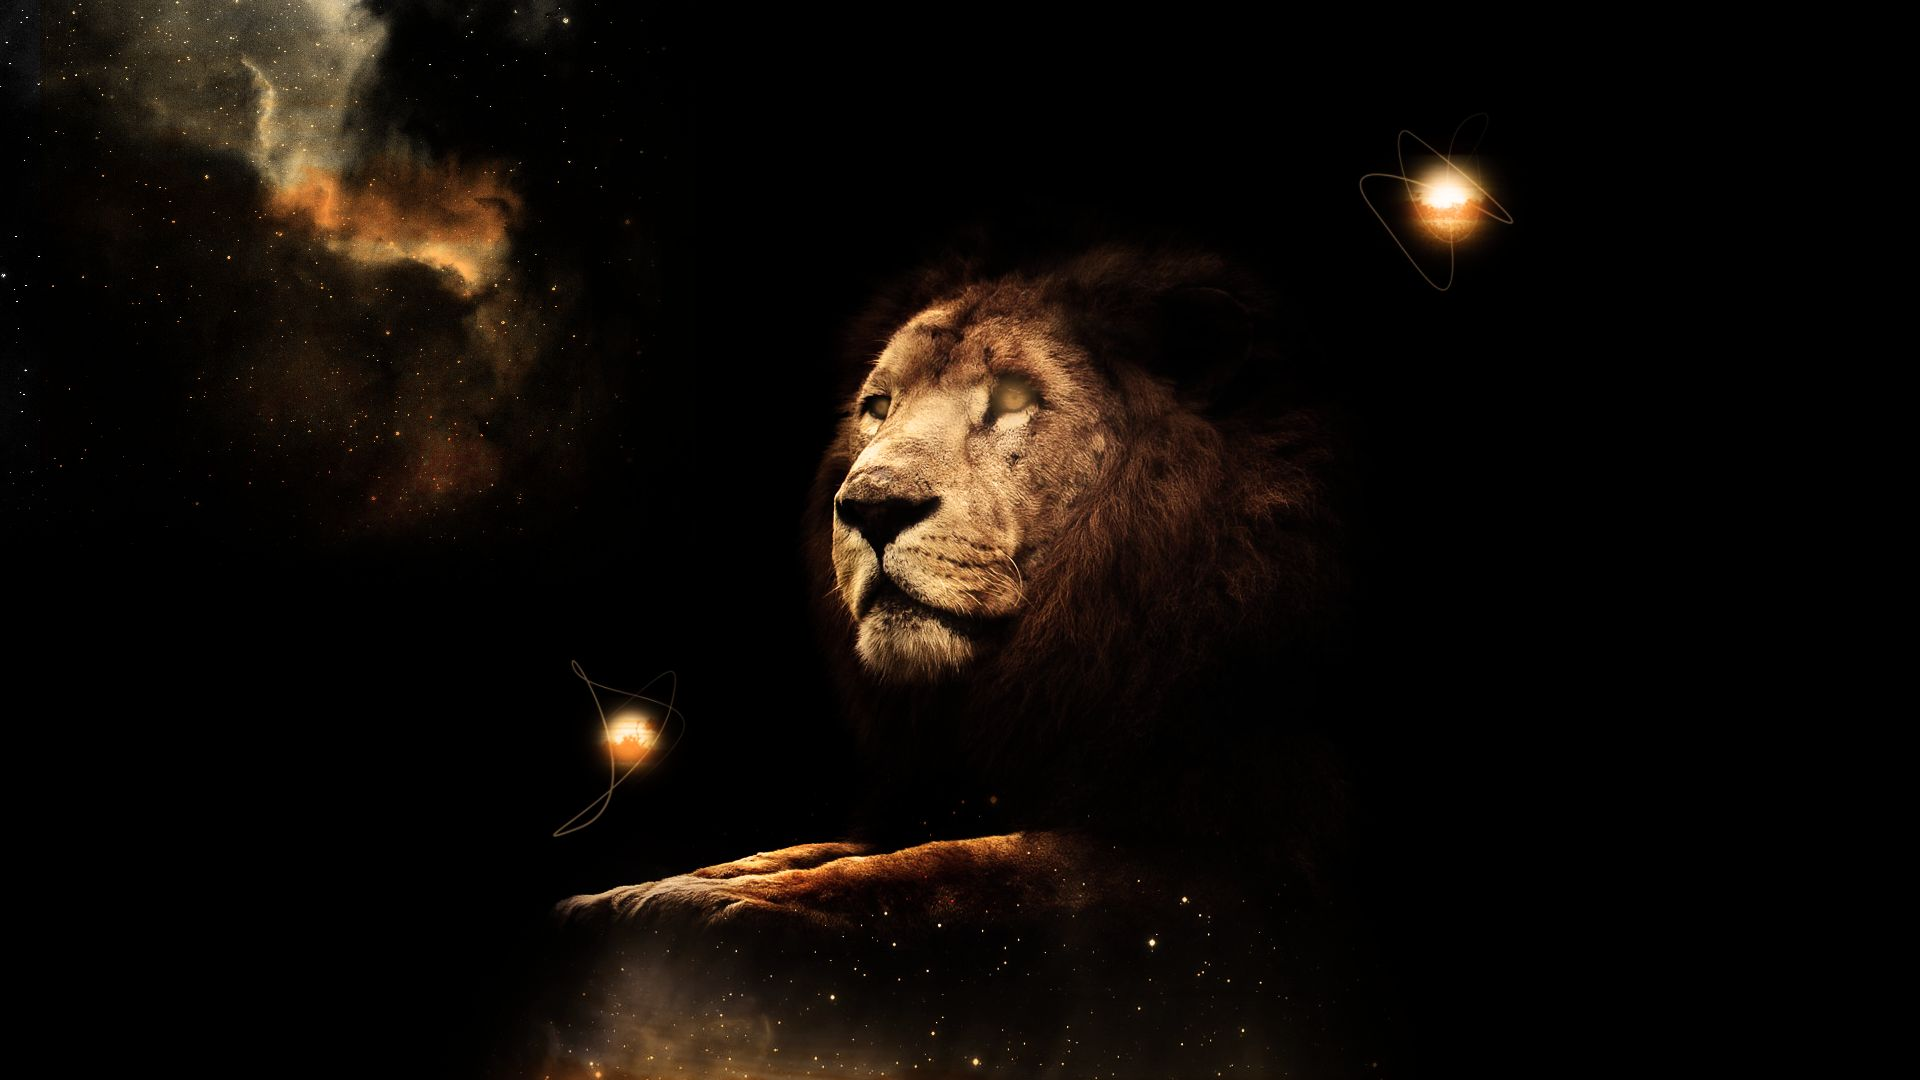 Lion Art laptop wallpaper